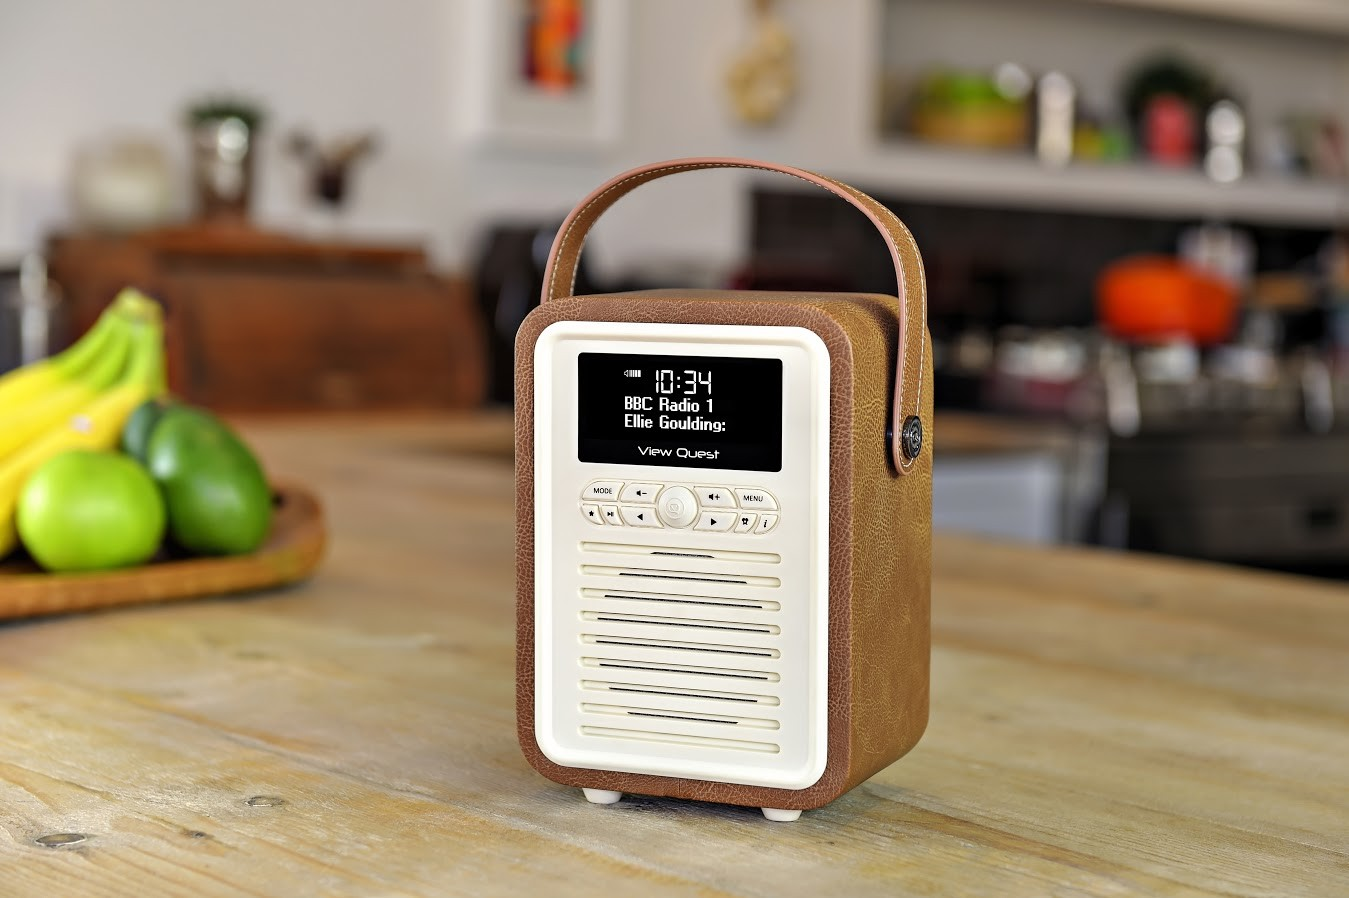 vq viewquest retro mini dab dab fm radio bluetooth. Black Bedroom Furniture Sets. Home Design Ideas